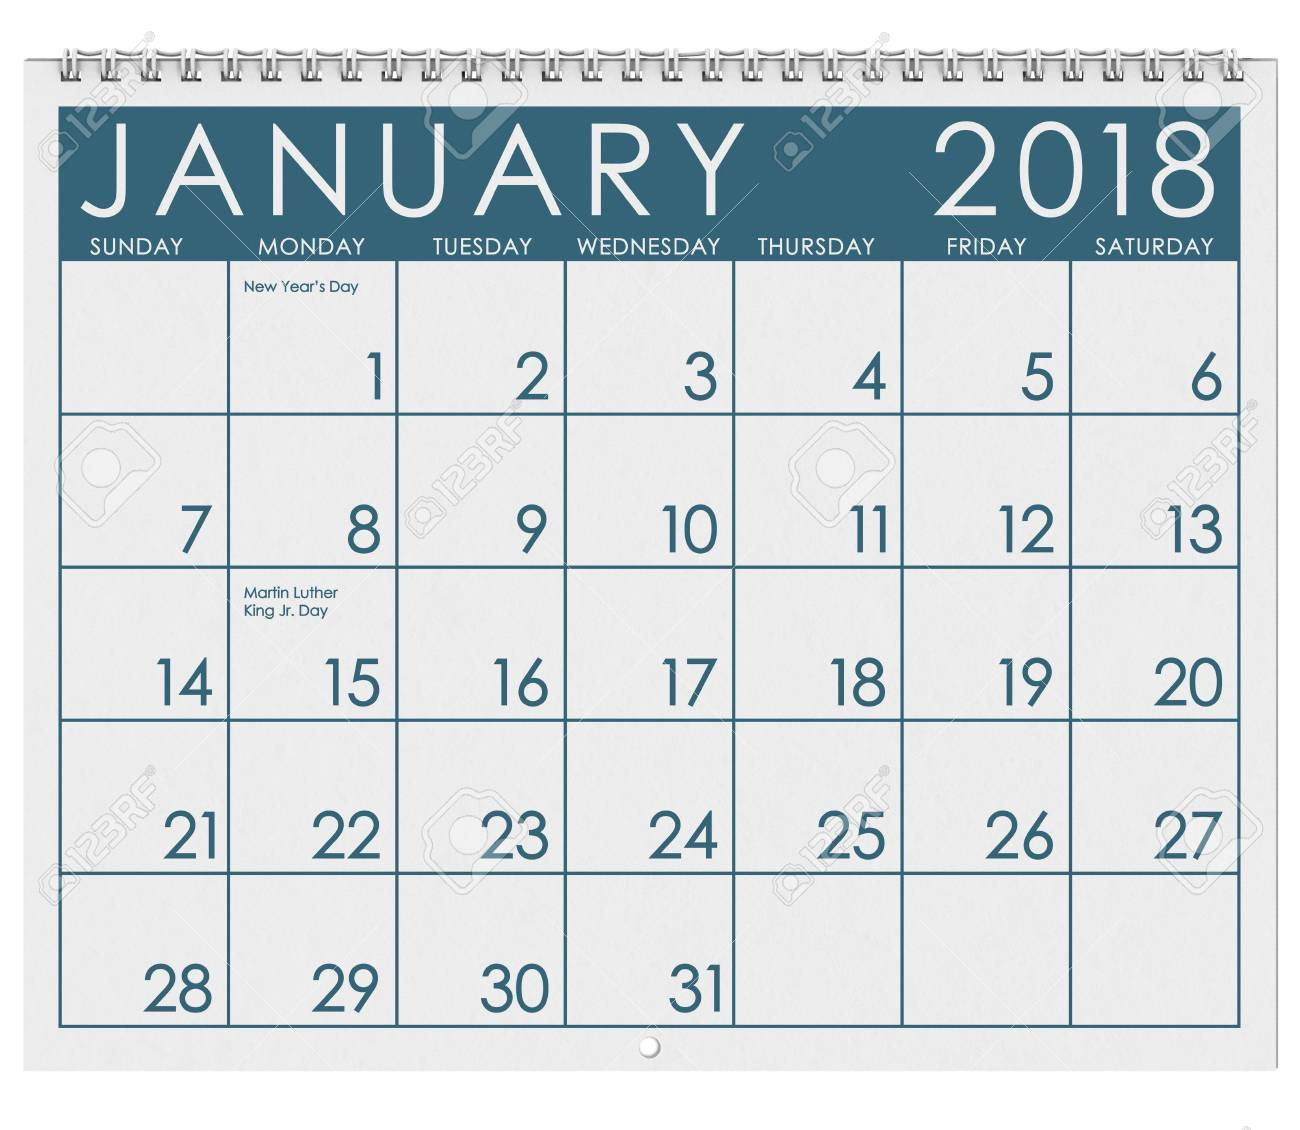 12 image series of months of the year in a 3d rendered calendar